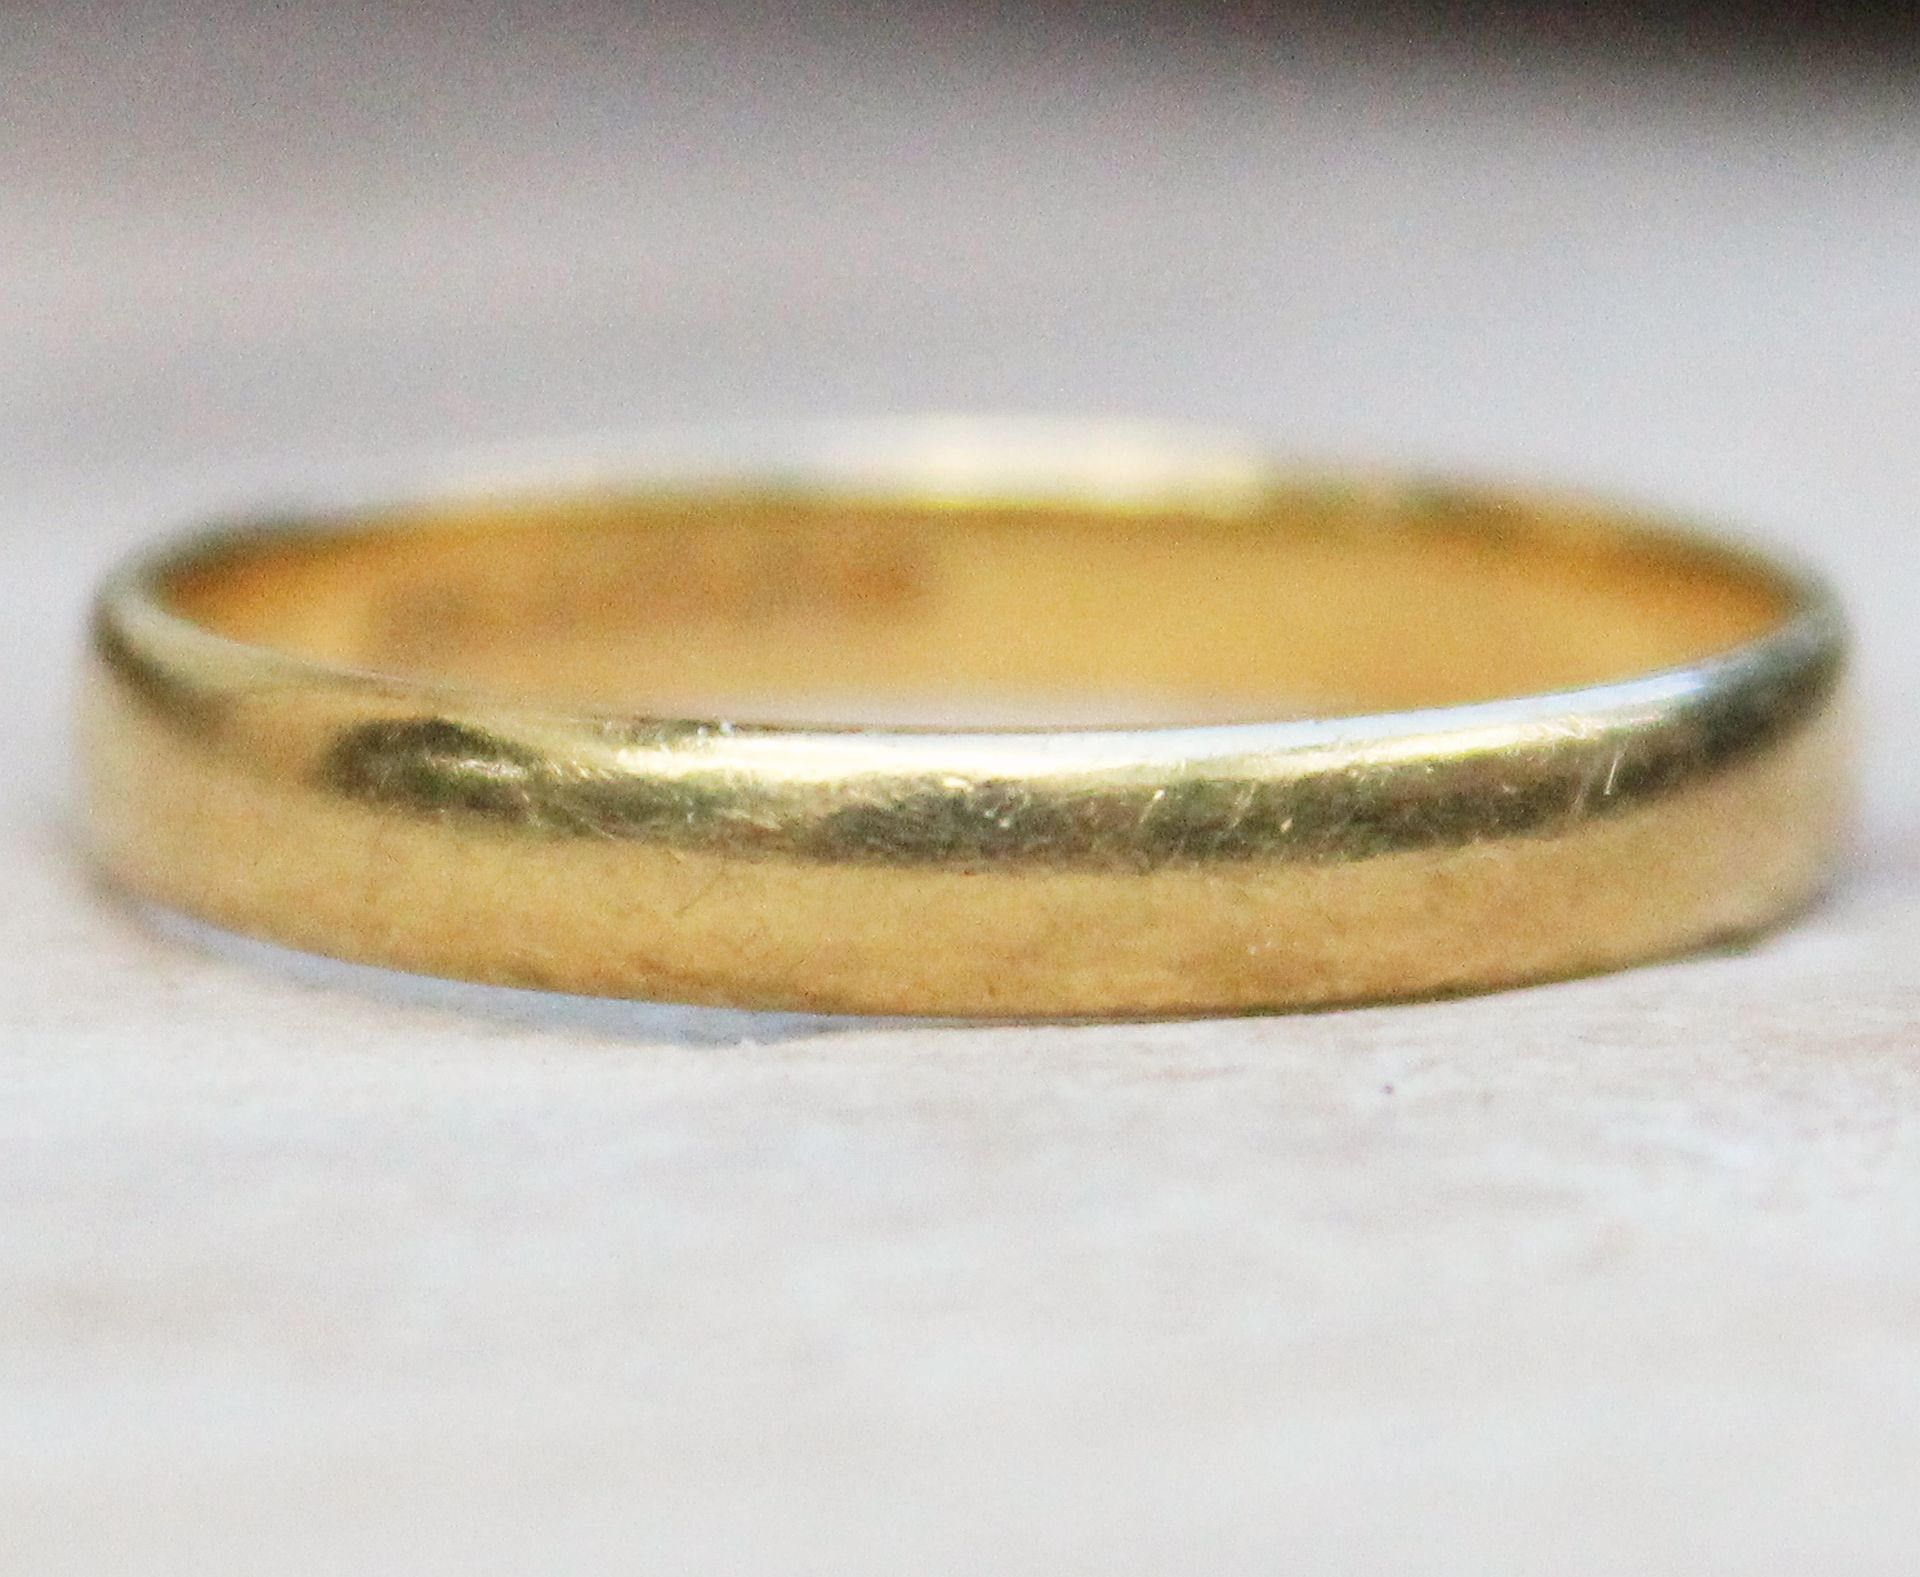 9ct Ring Gold Wedding Band Vintage Jewellery Old Bridal Mens Sz O 1 2 Womens Wedding Ring Mens Wedding Ring Vintage Wedding Gold Jewelry Mens Wedding Rings Vintage Wedding Rings Vintage Gold